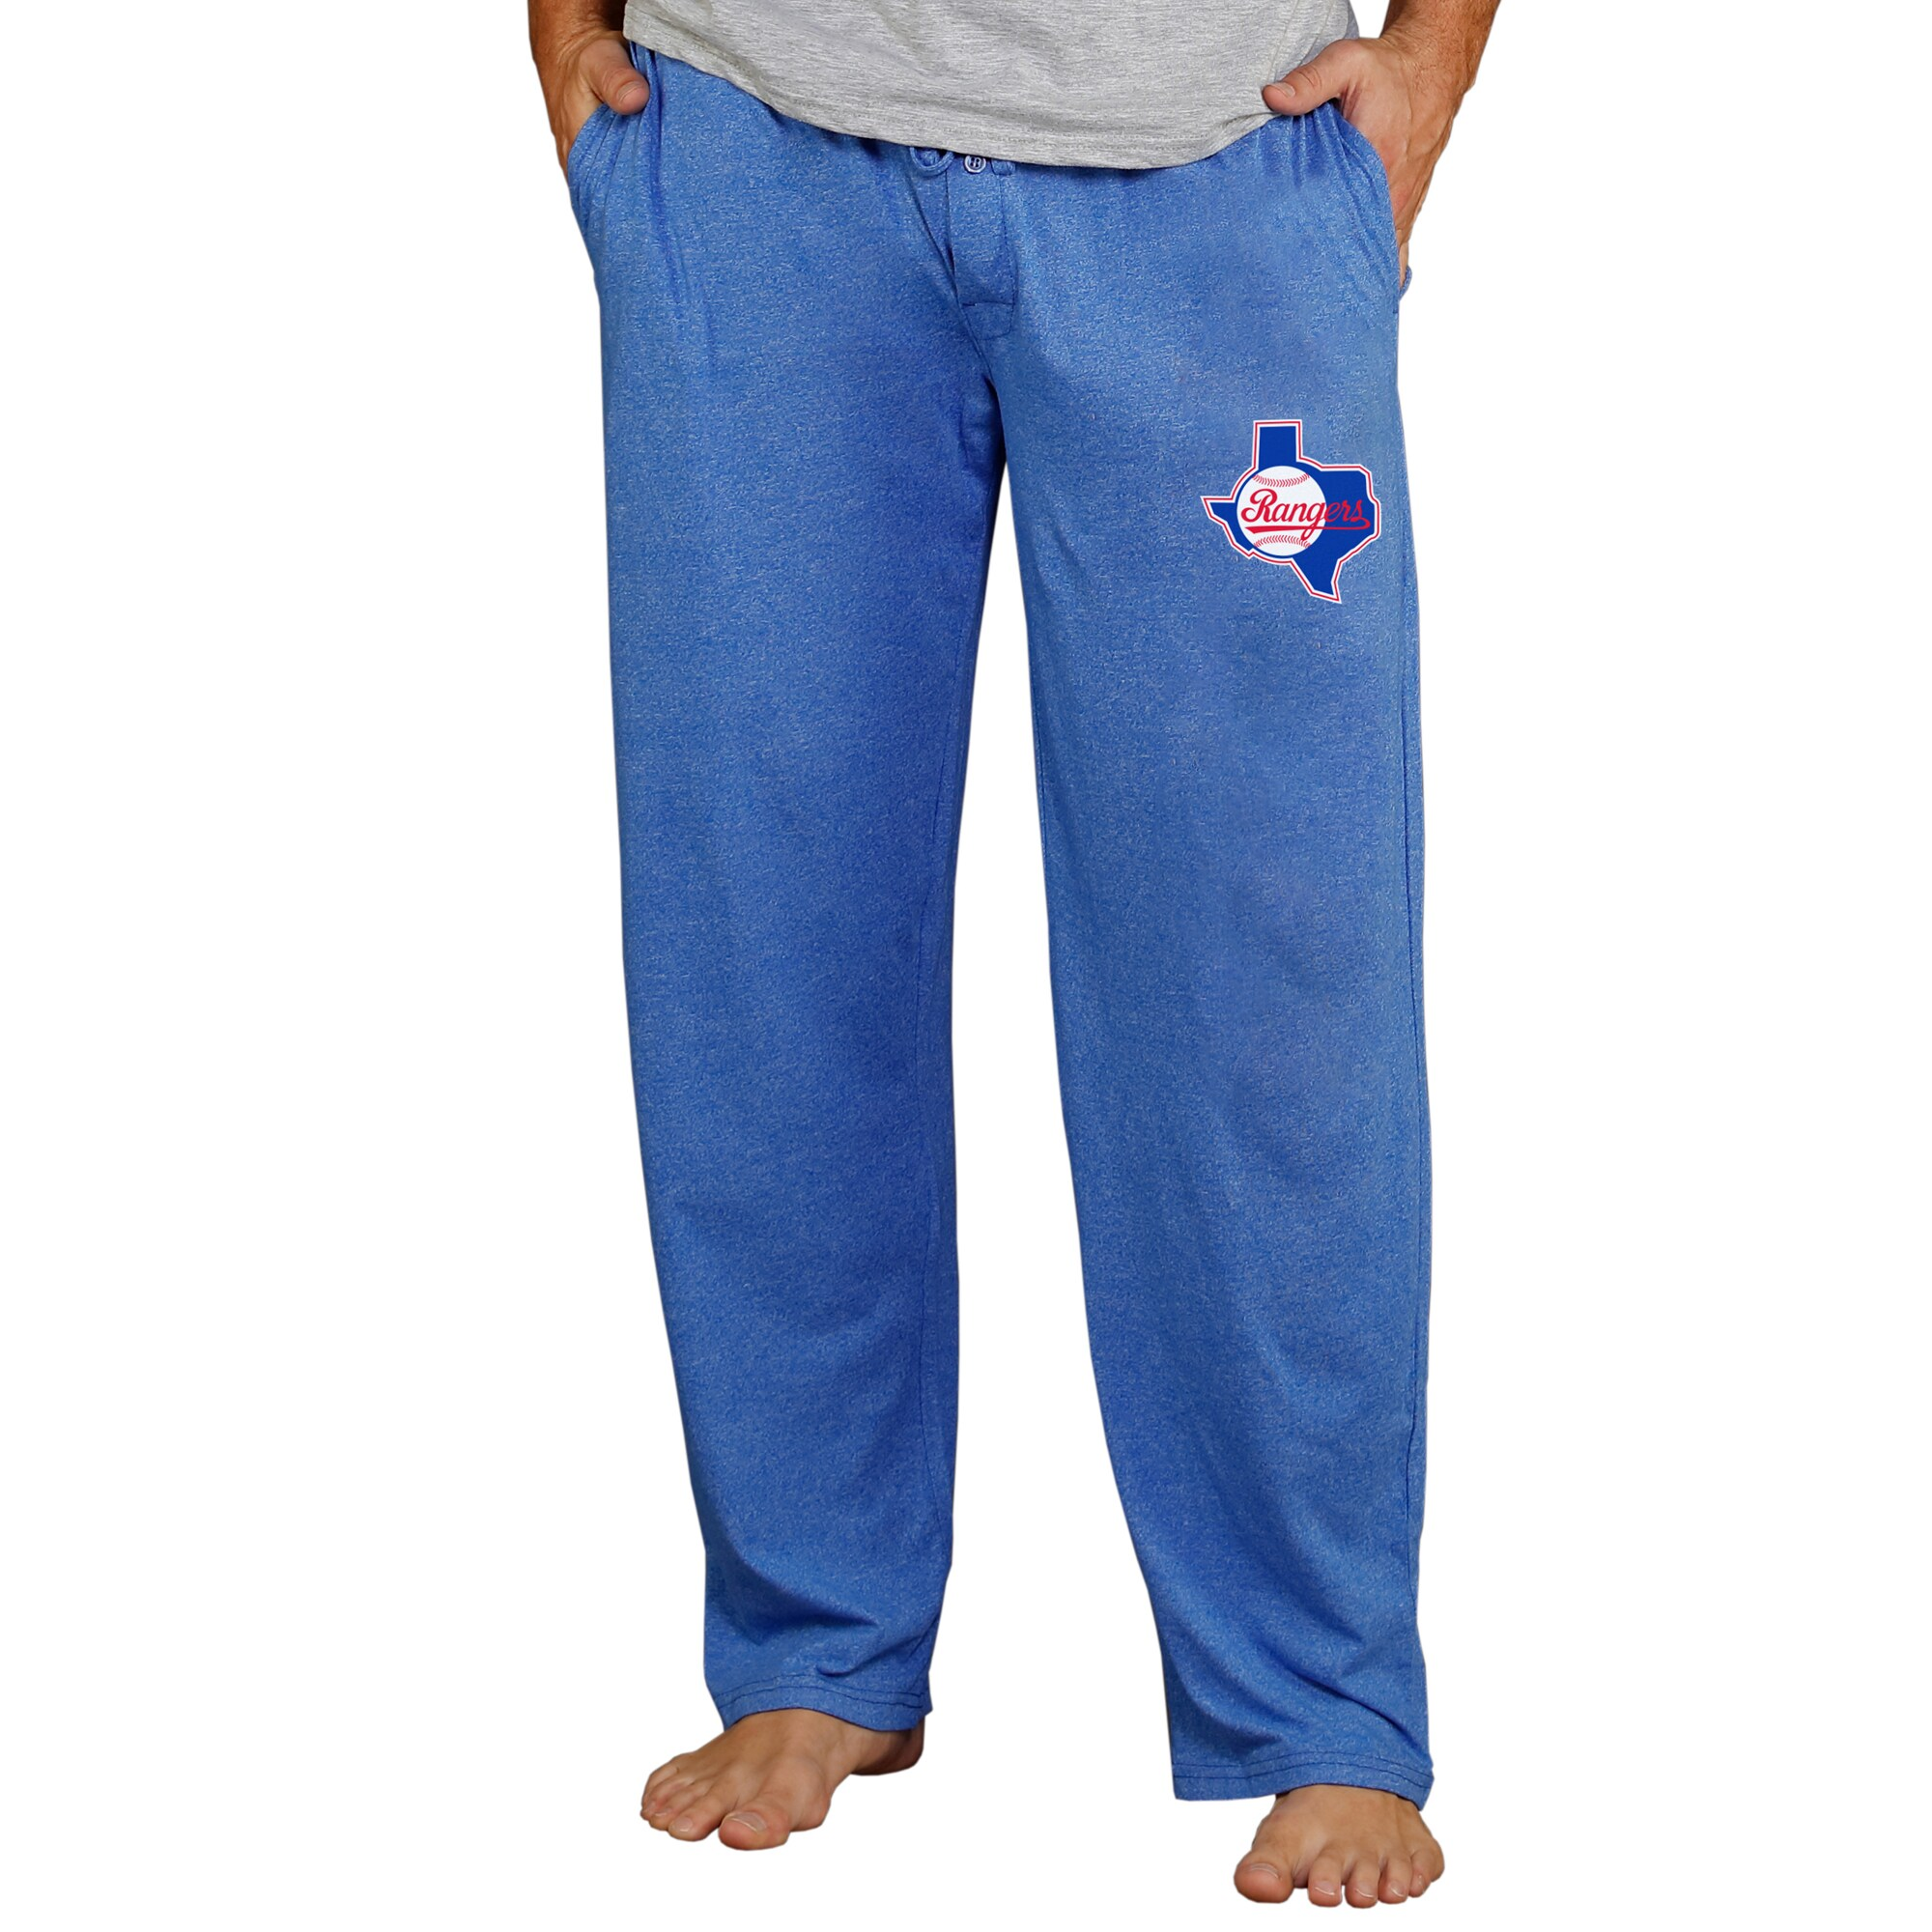 Texas Rangers Concepts Sport Cooperstown Quest Lounge Pants - Royal